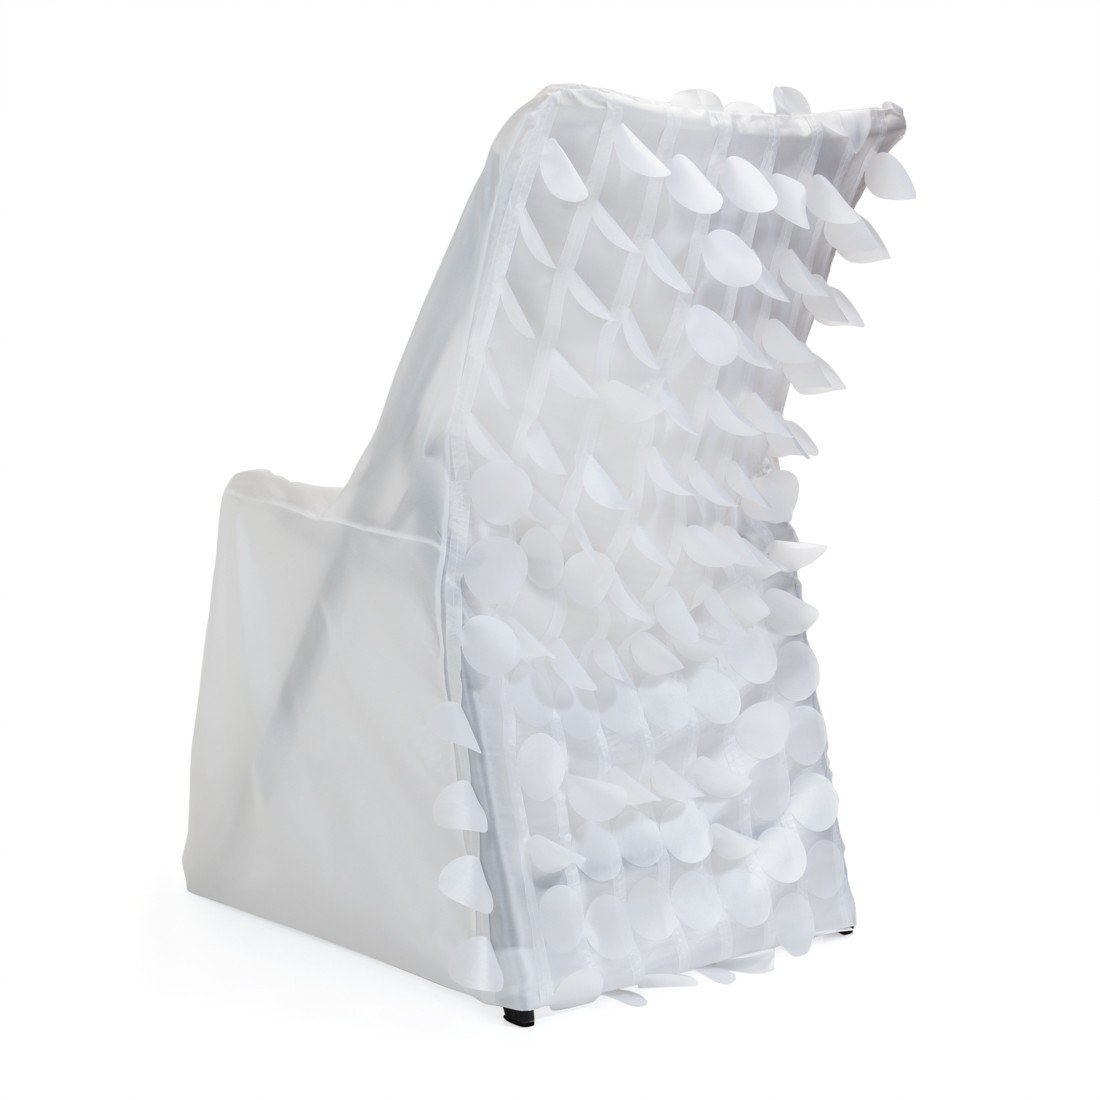 Cheap Folding Chair Cover for Sale  Home Furniture Design